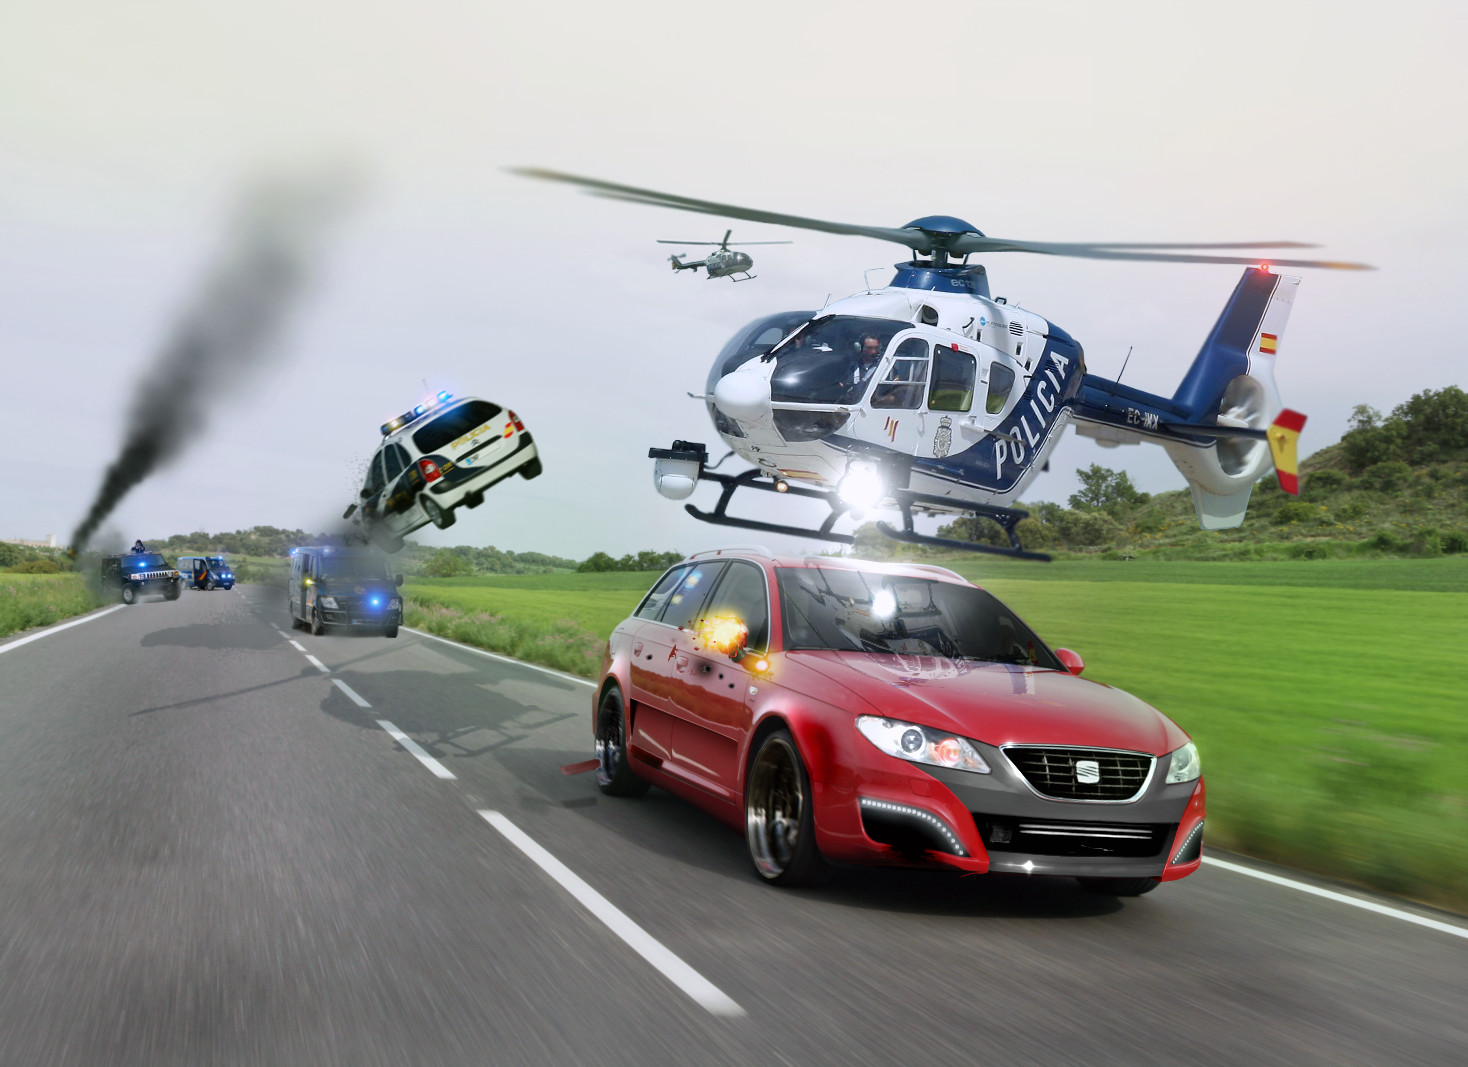 How to write a car chase